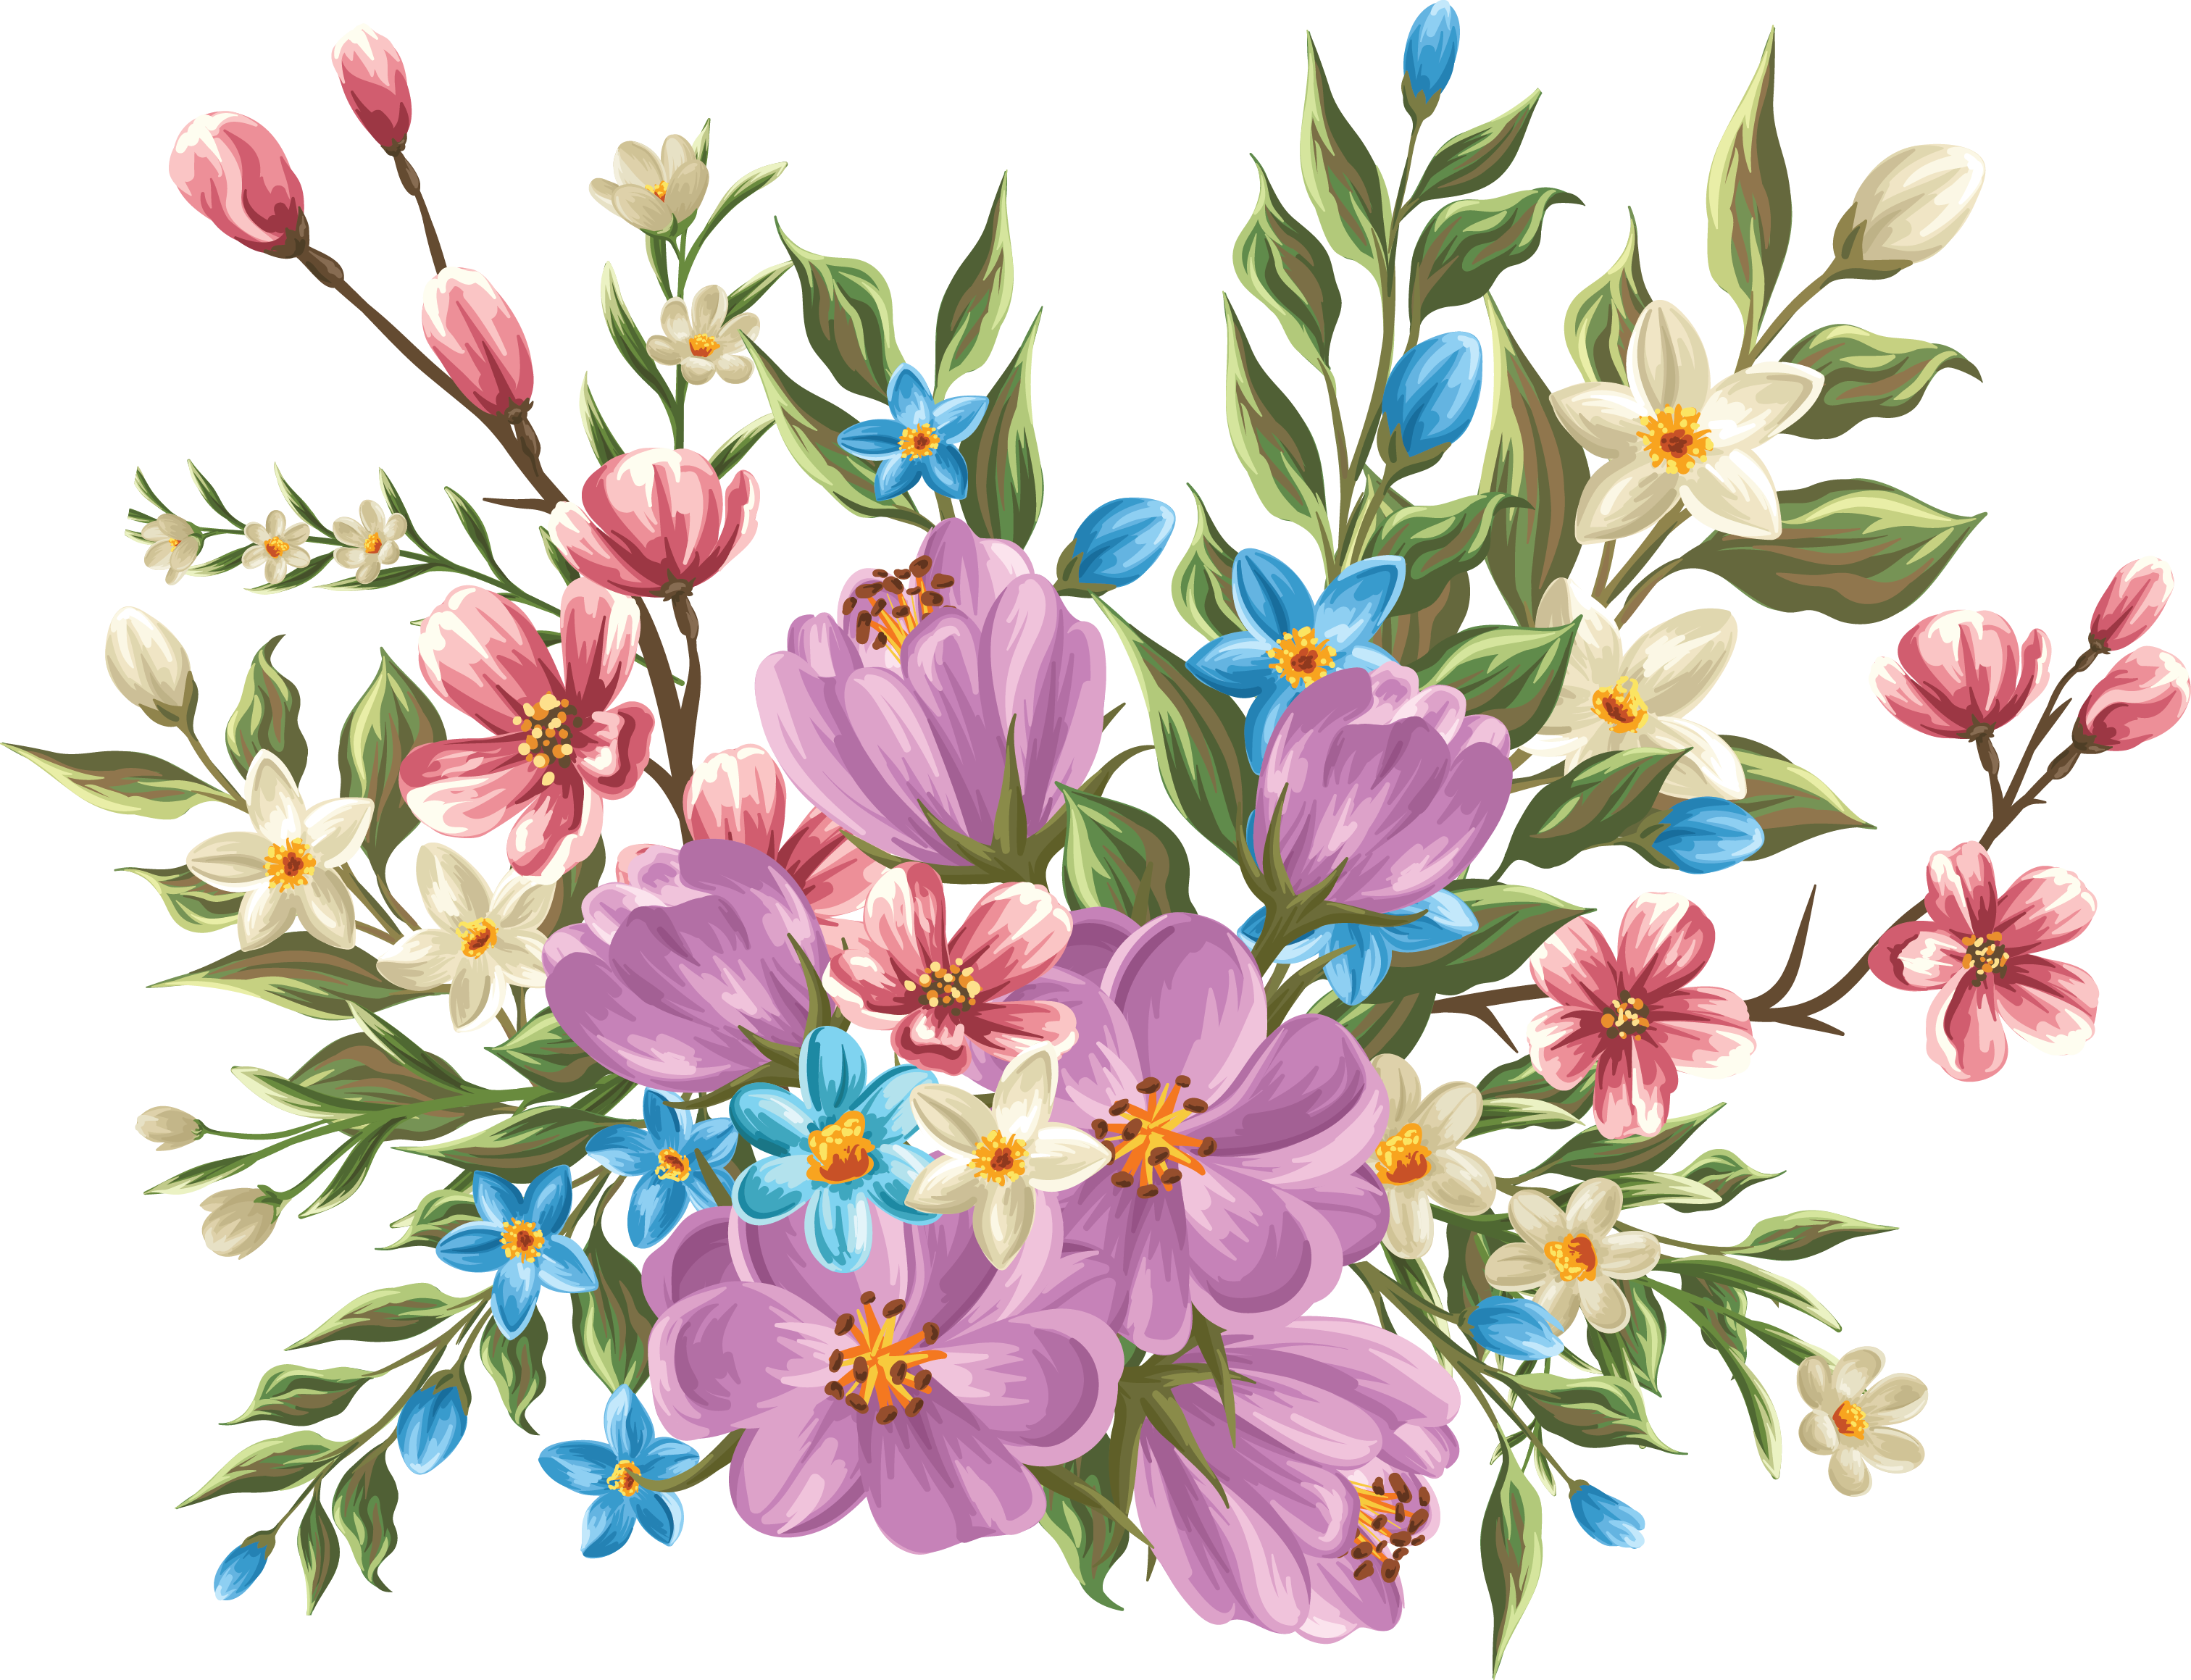 Softball clipart vintage. My design beautiful flowers